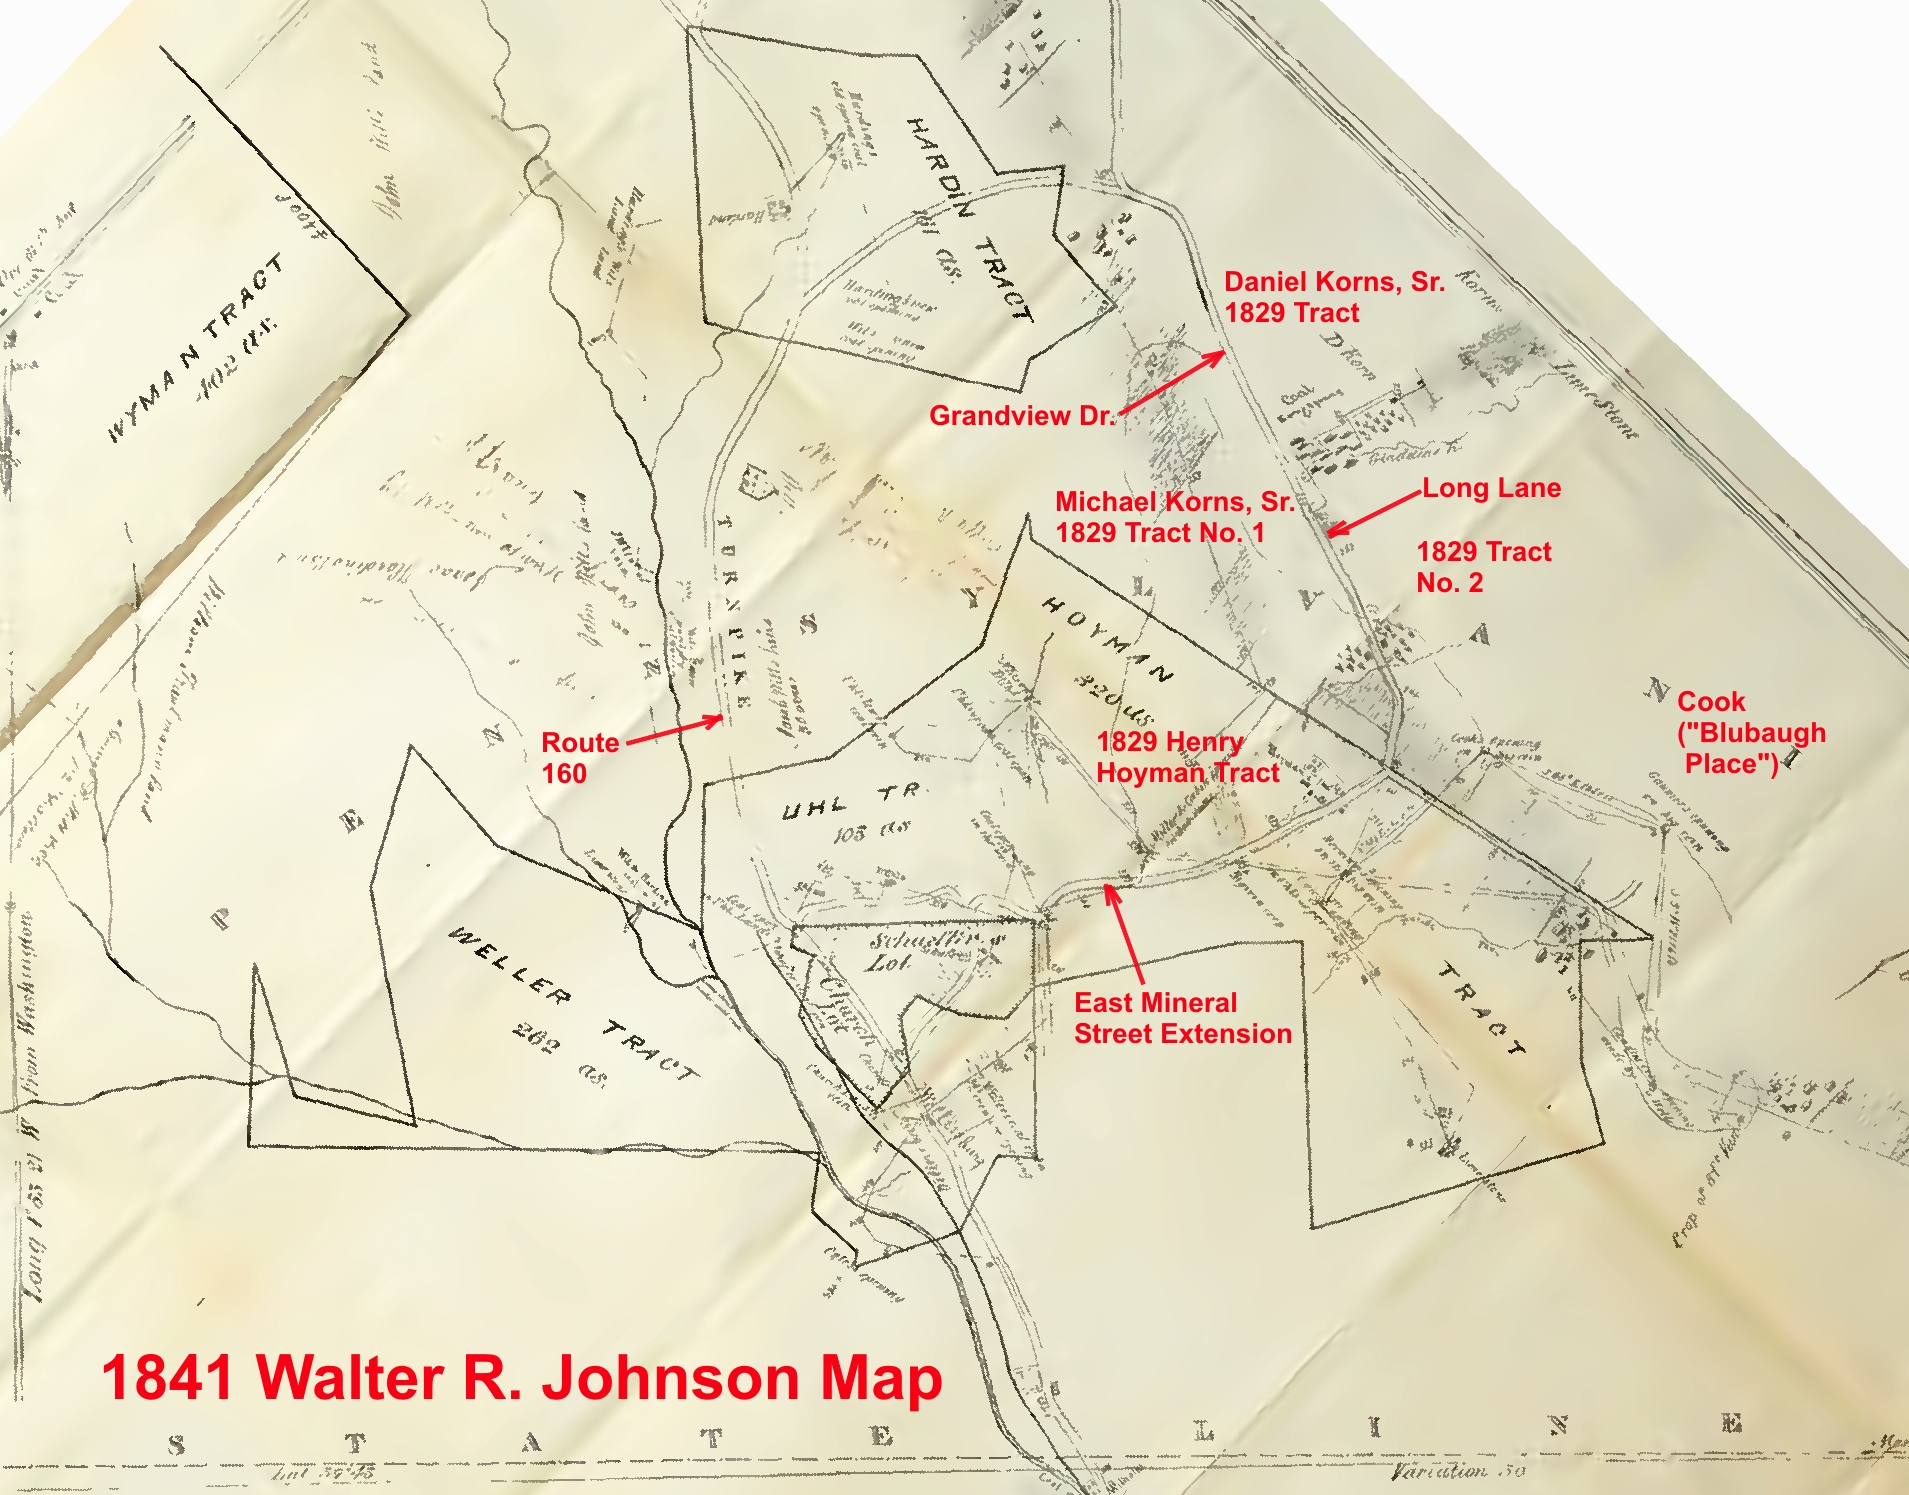 Annotated 1841 Johnson map